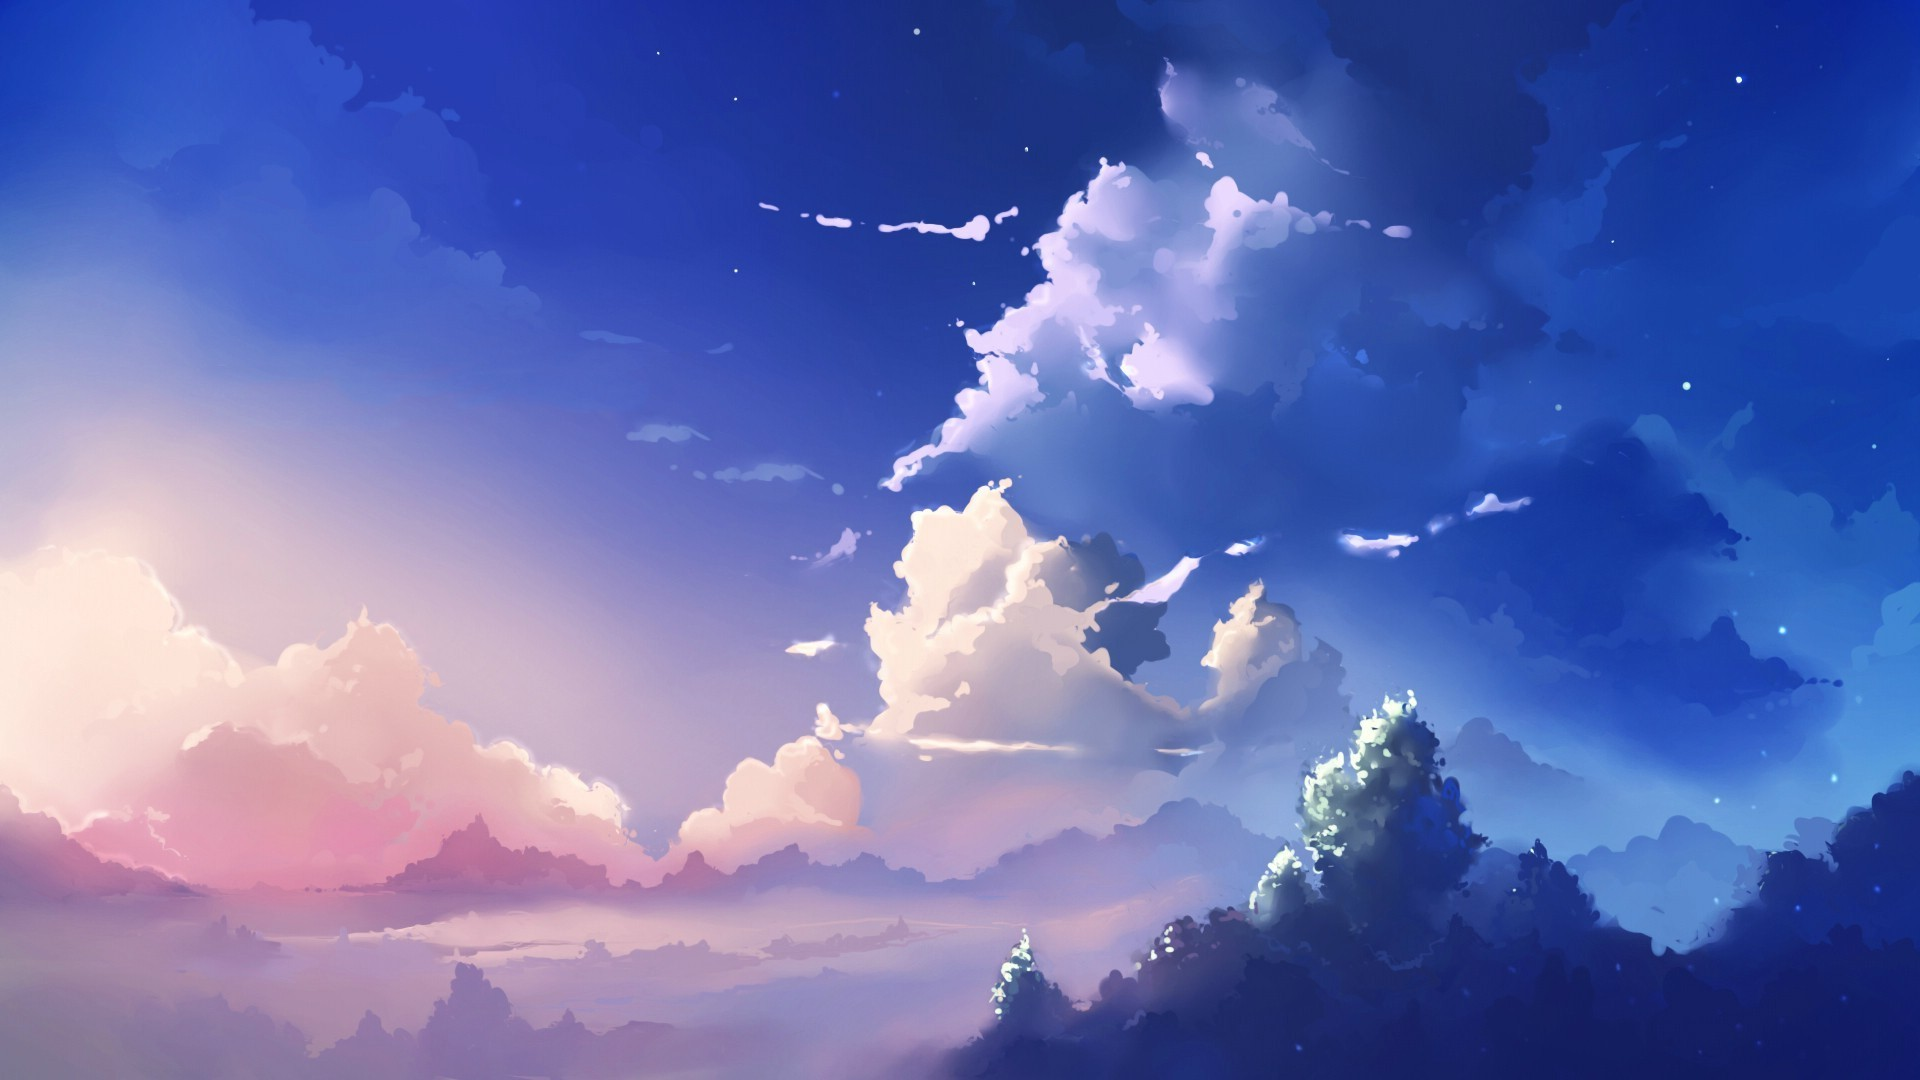 Anime Scenery Wallpaper (48+ images)